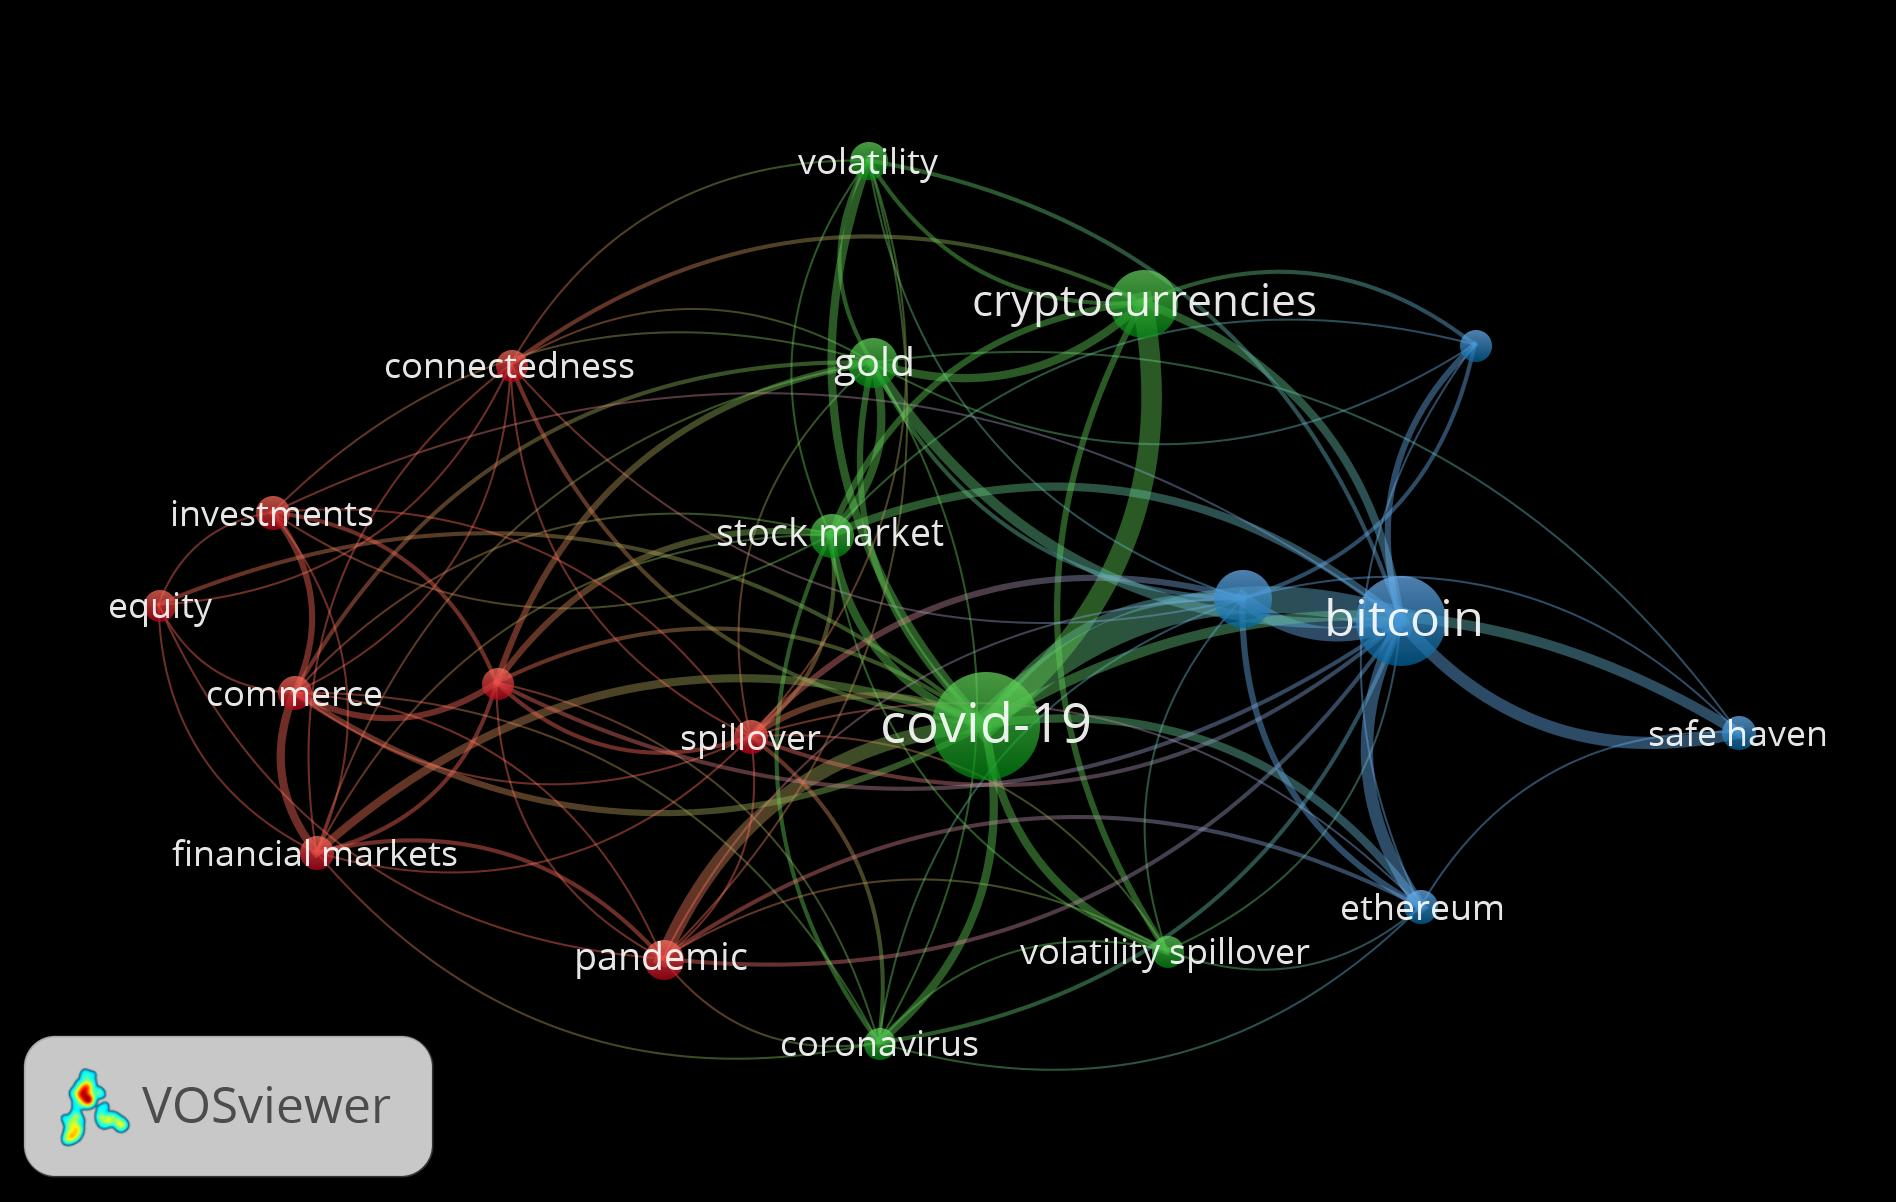 An image produced by vosviewer that demonstrates connections and networks of research papers titles